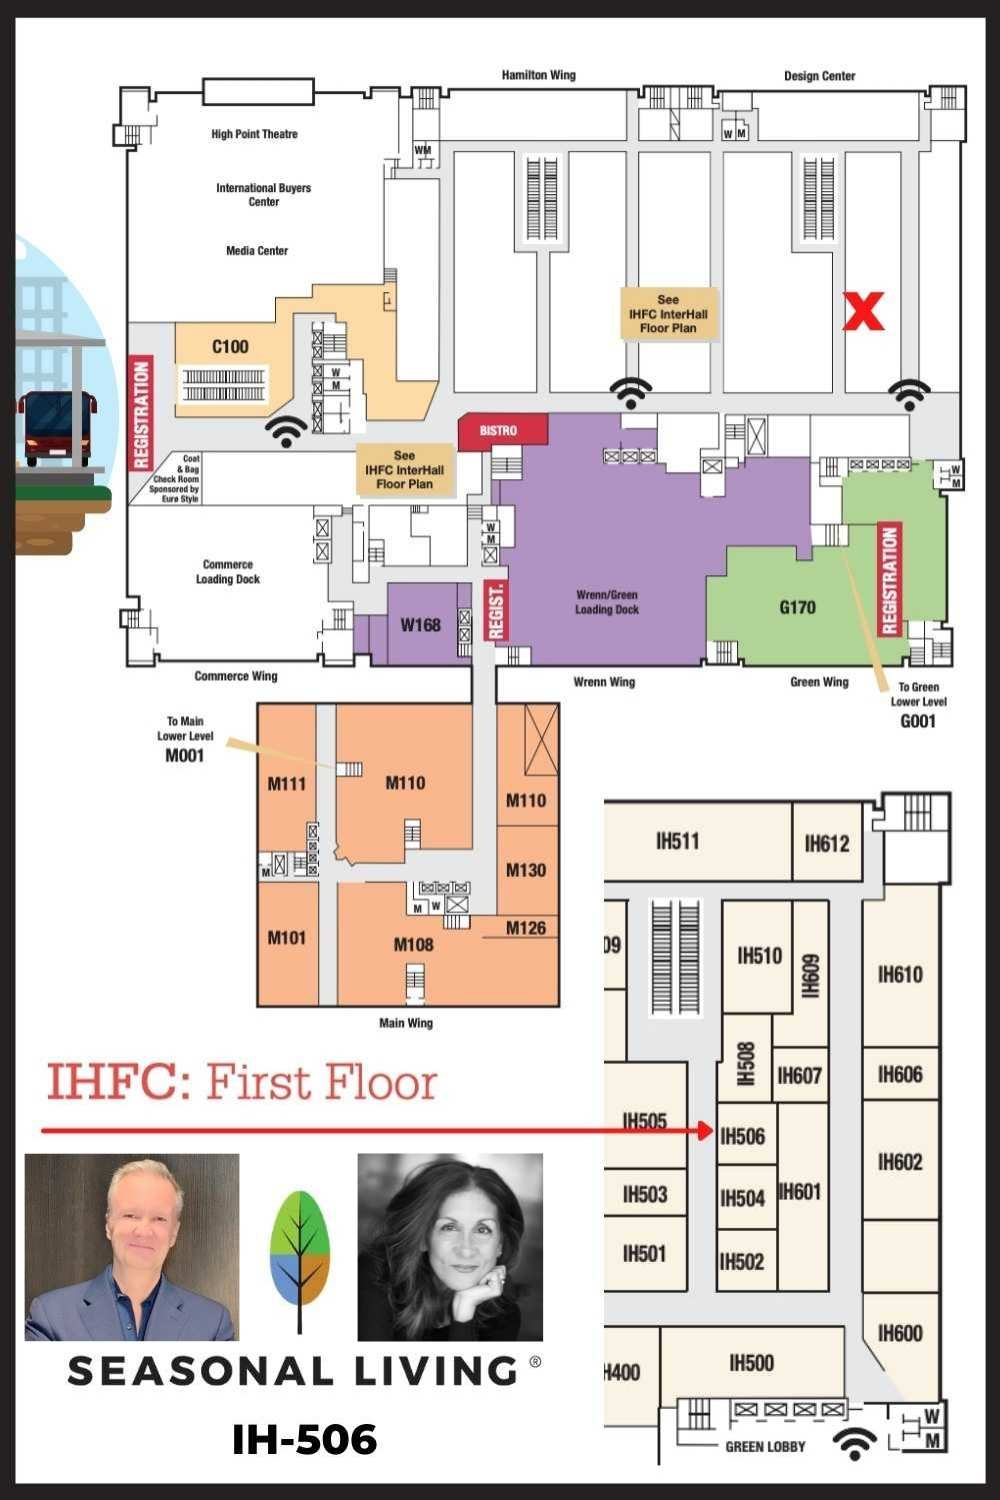 Map of how to find Seasonal Living's exhibitor space at High Point Market in Interhall 506